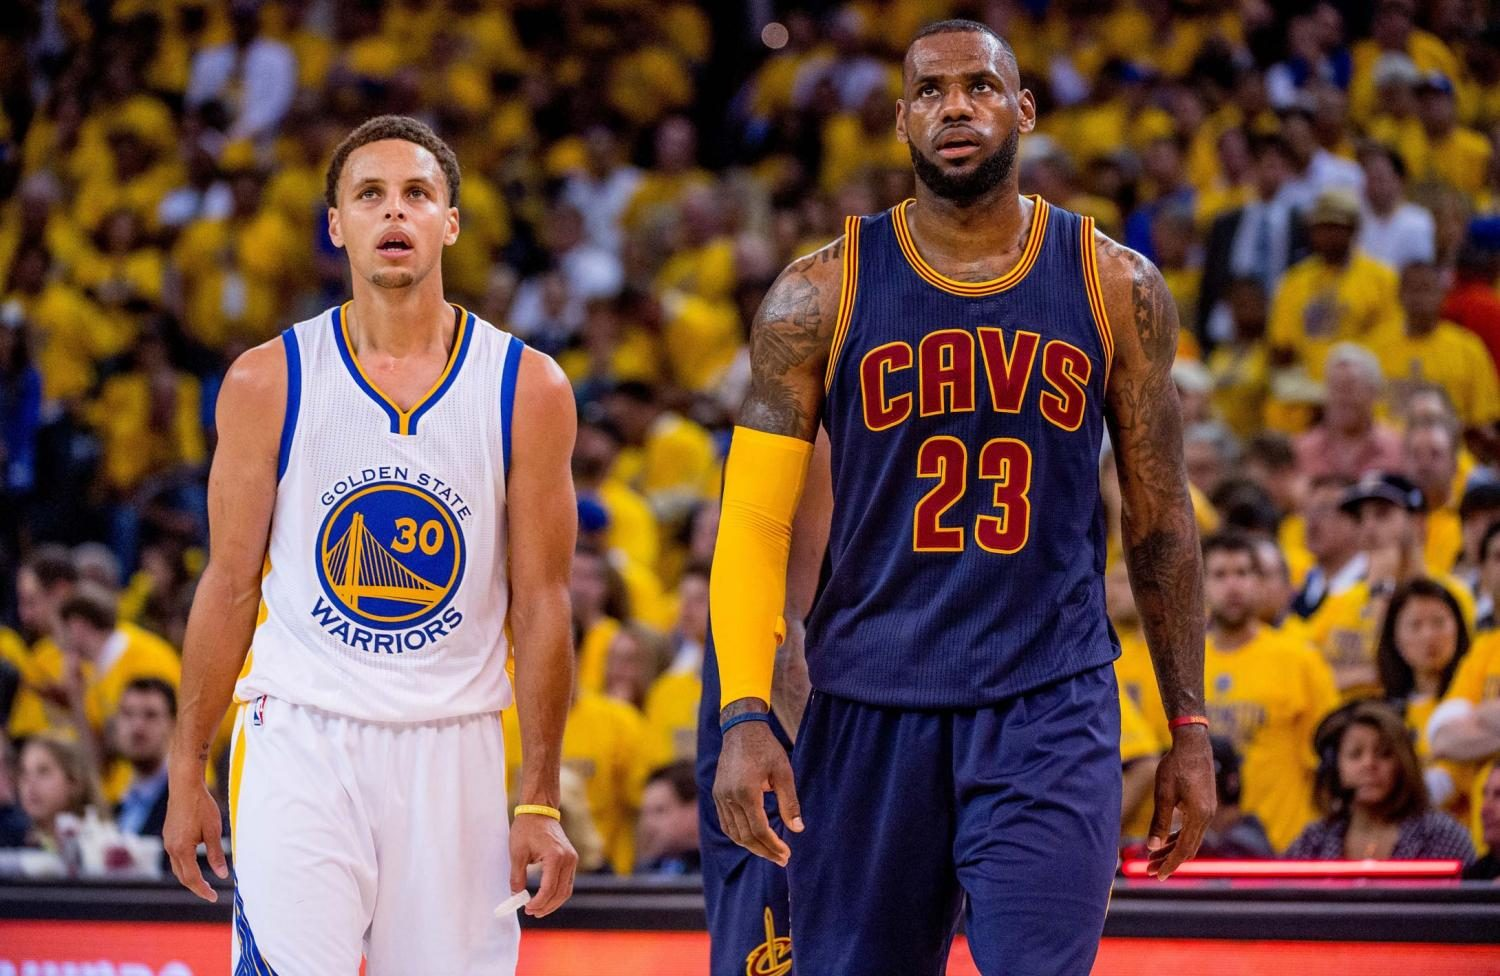 Stephen+Curry+%28Left%29+and+LeBron+James+%28Right%29+appear+to+be+on+a+collision+course+for+another+NBA+finals+rematch+this+season.+